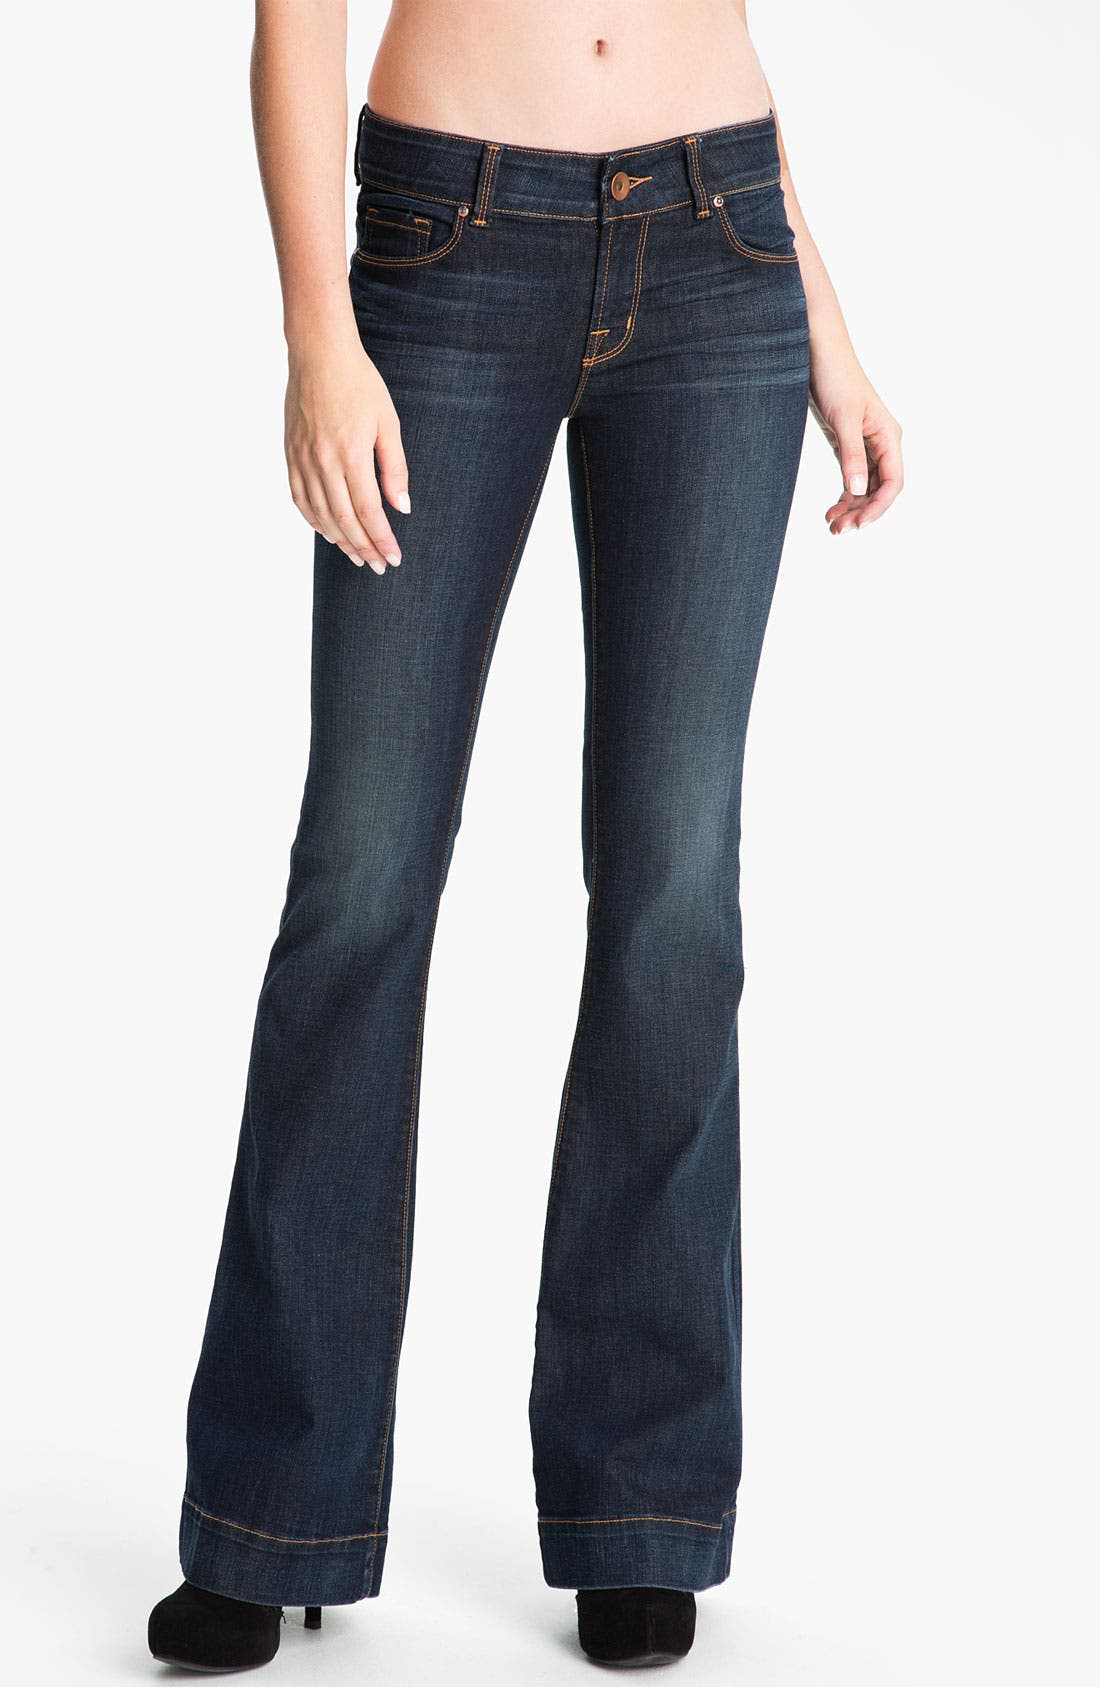 Alternate Image 1 Selected - J Brand 'Love Story' Bellbottom Stretch Jeans